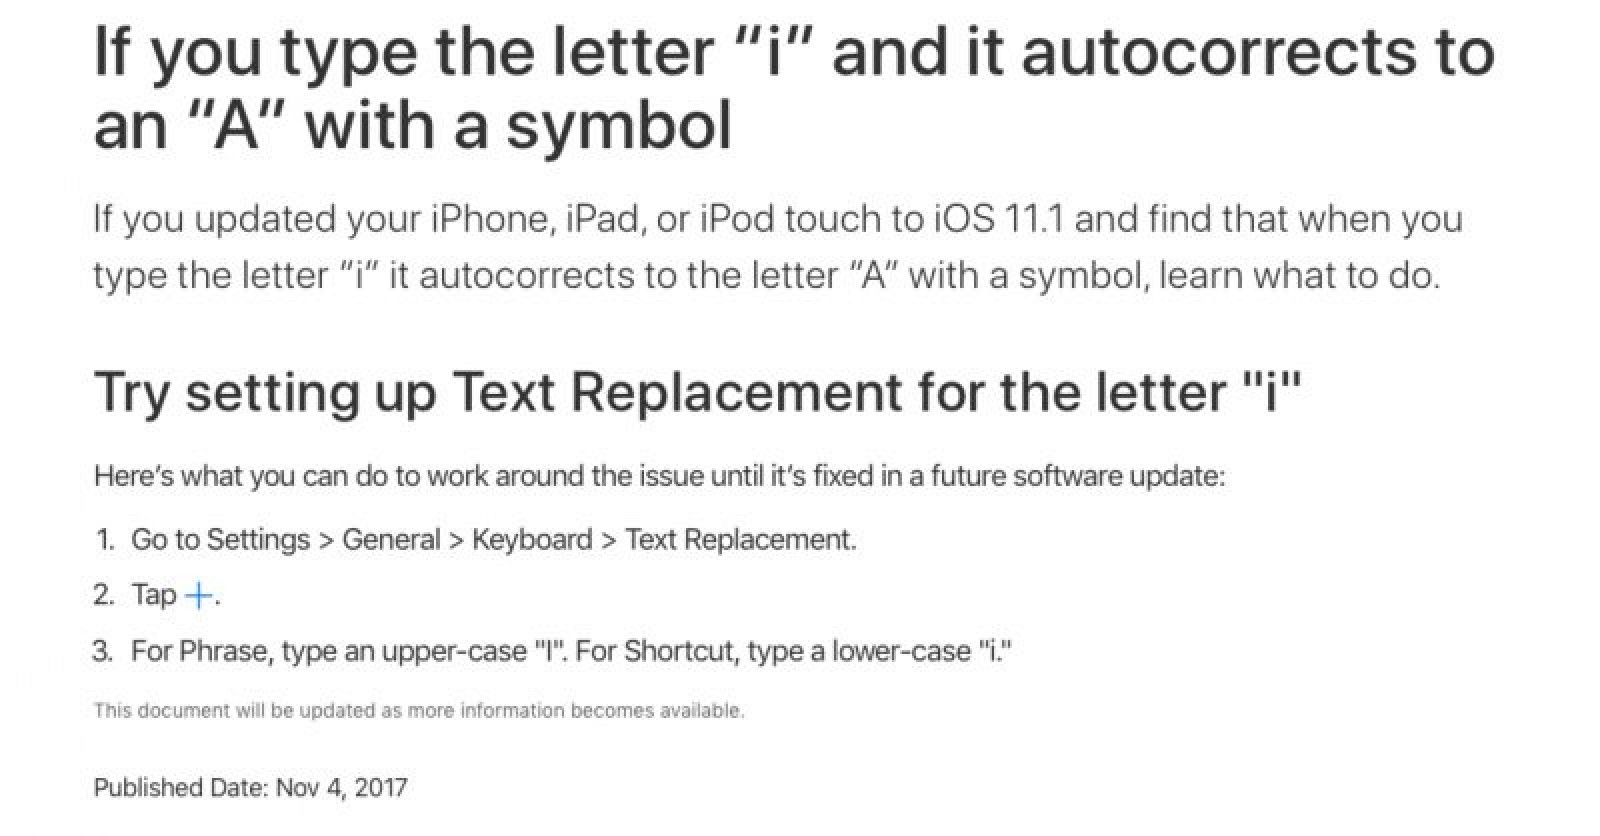 Apple recommends temporary workaround for autocorrect bug in ios apple recommends temporary workaround for autocorrect bug in ios 111 mac rumors biocorpaavc Gallery